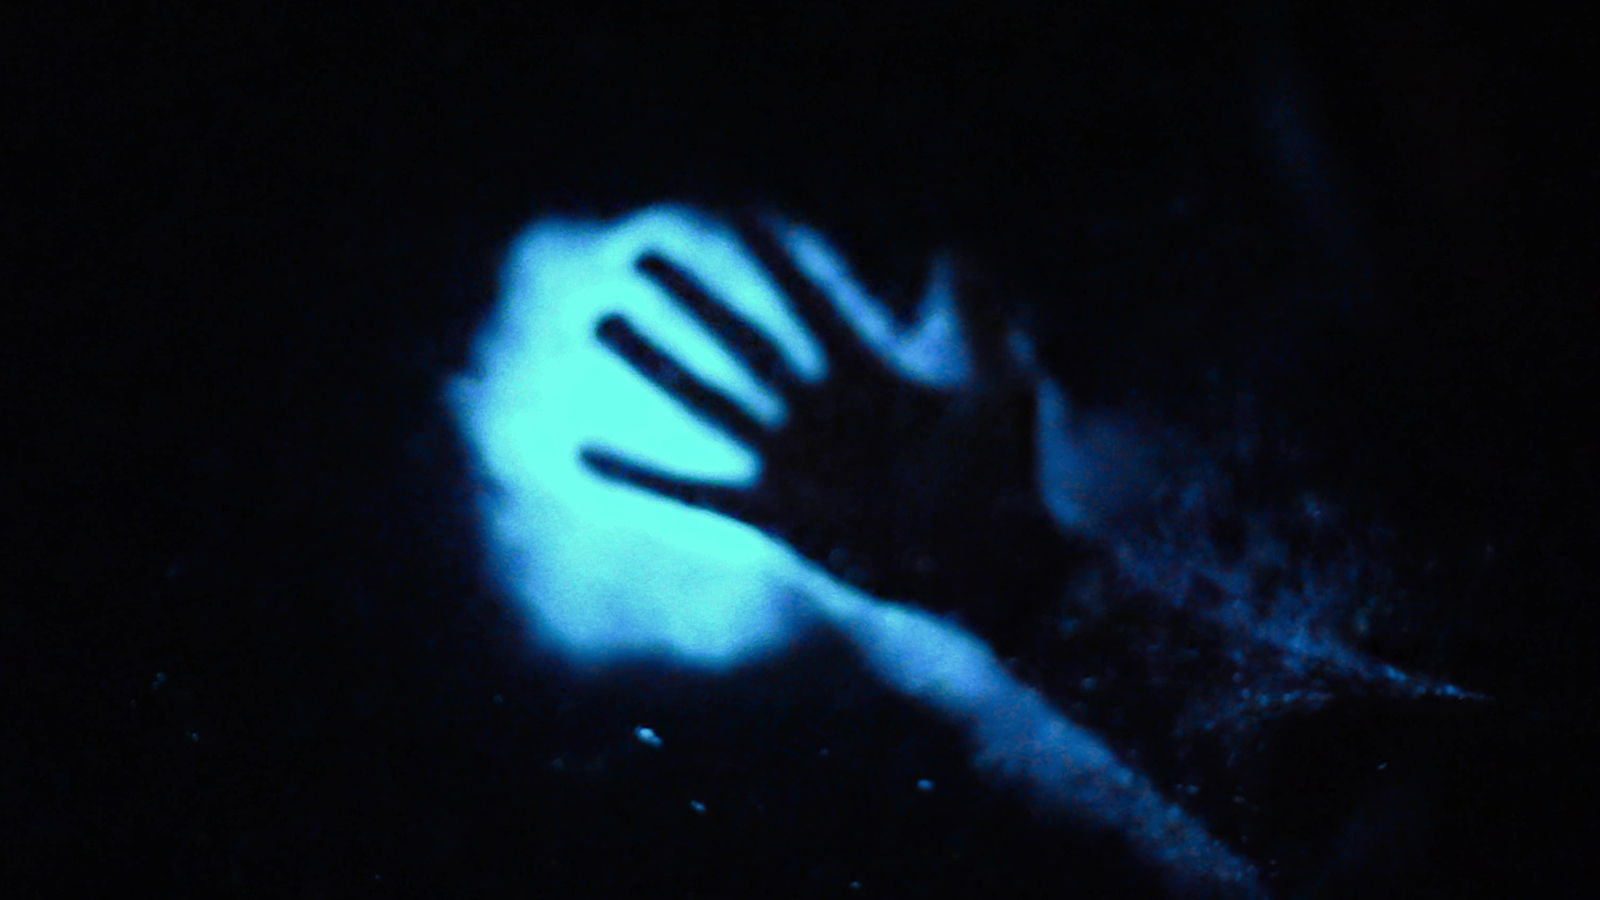 Vieques Bioluminescent Wonder Paddling In Trippy Mosquito